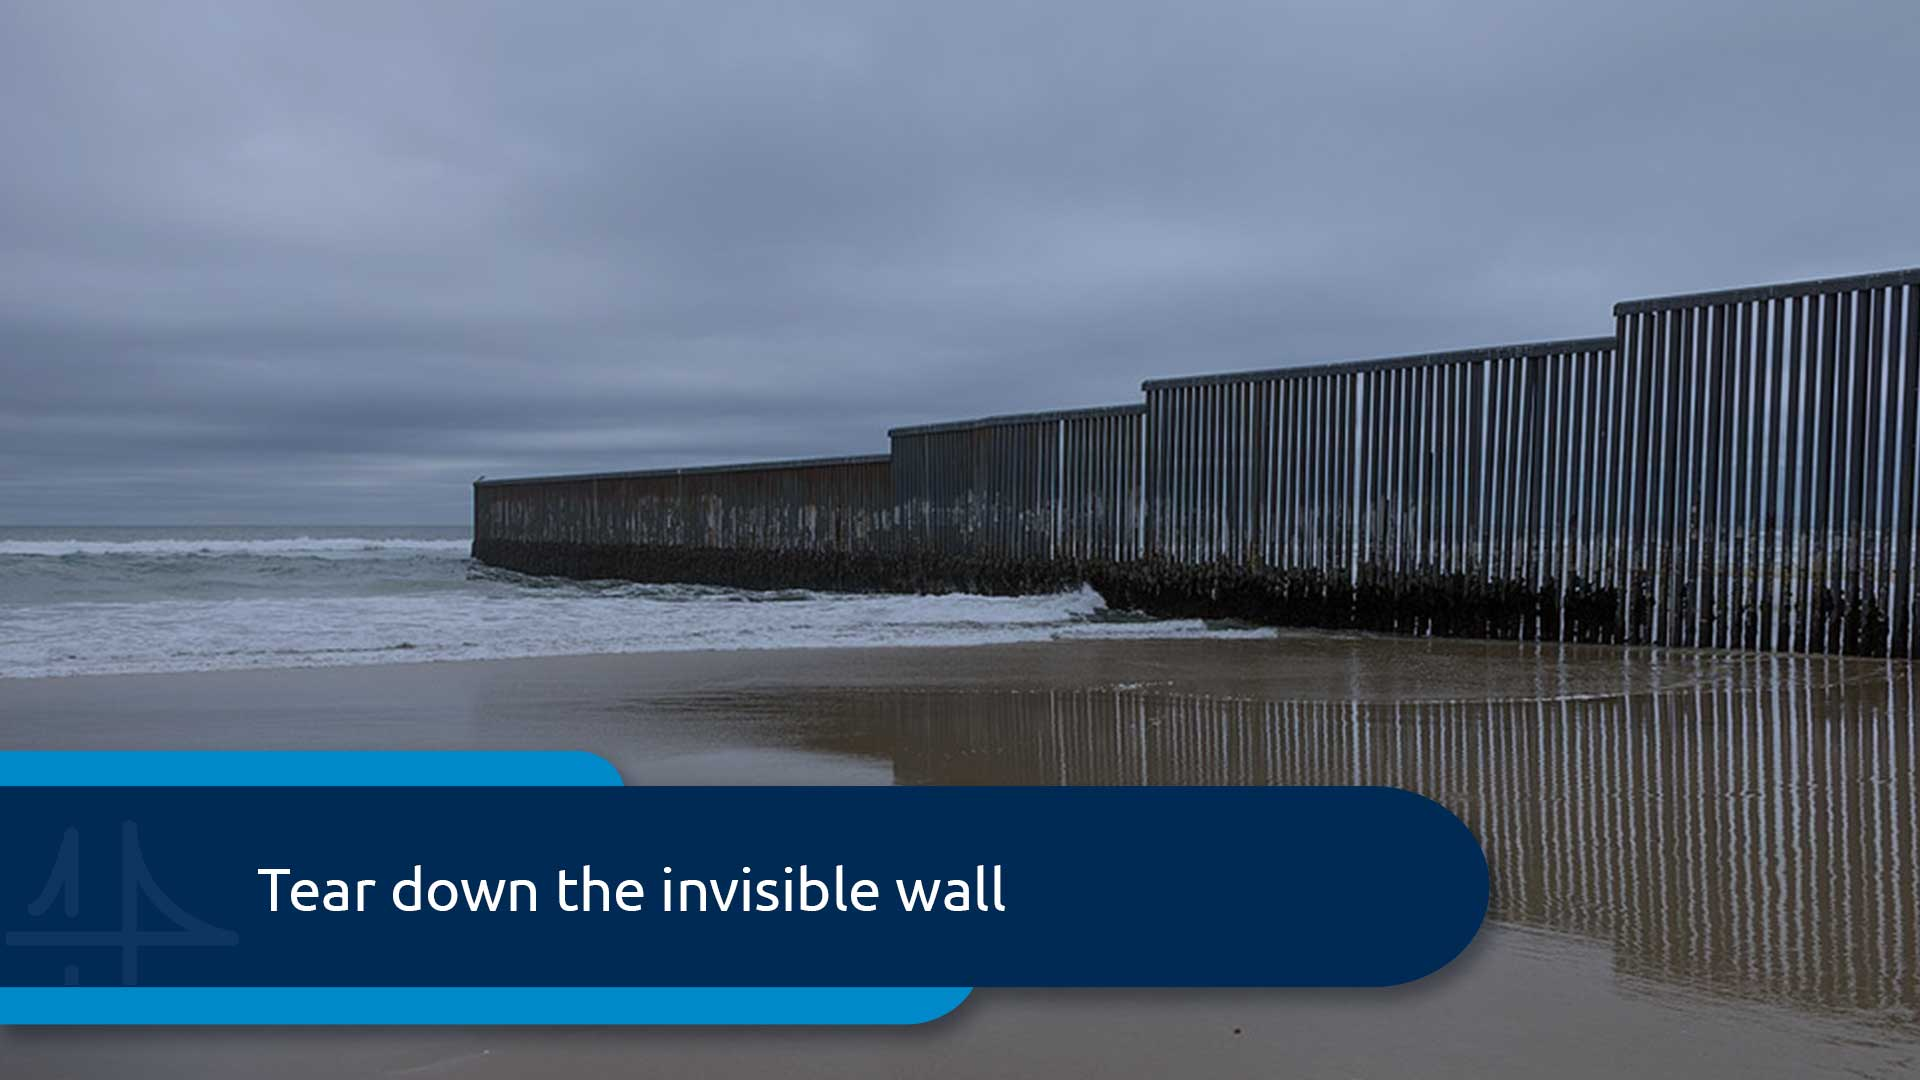 Tear down the invisible wall